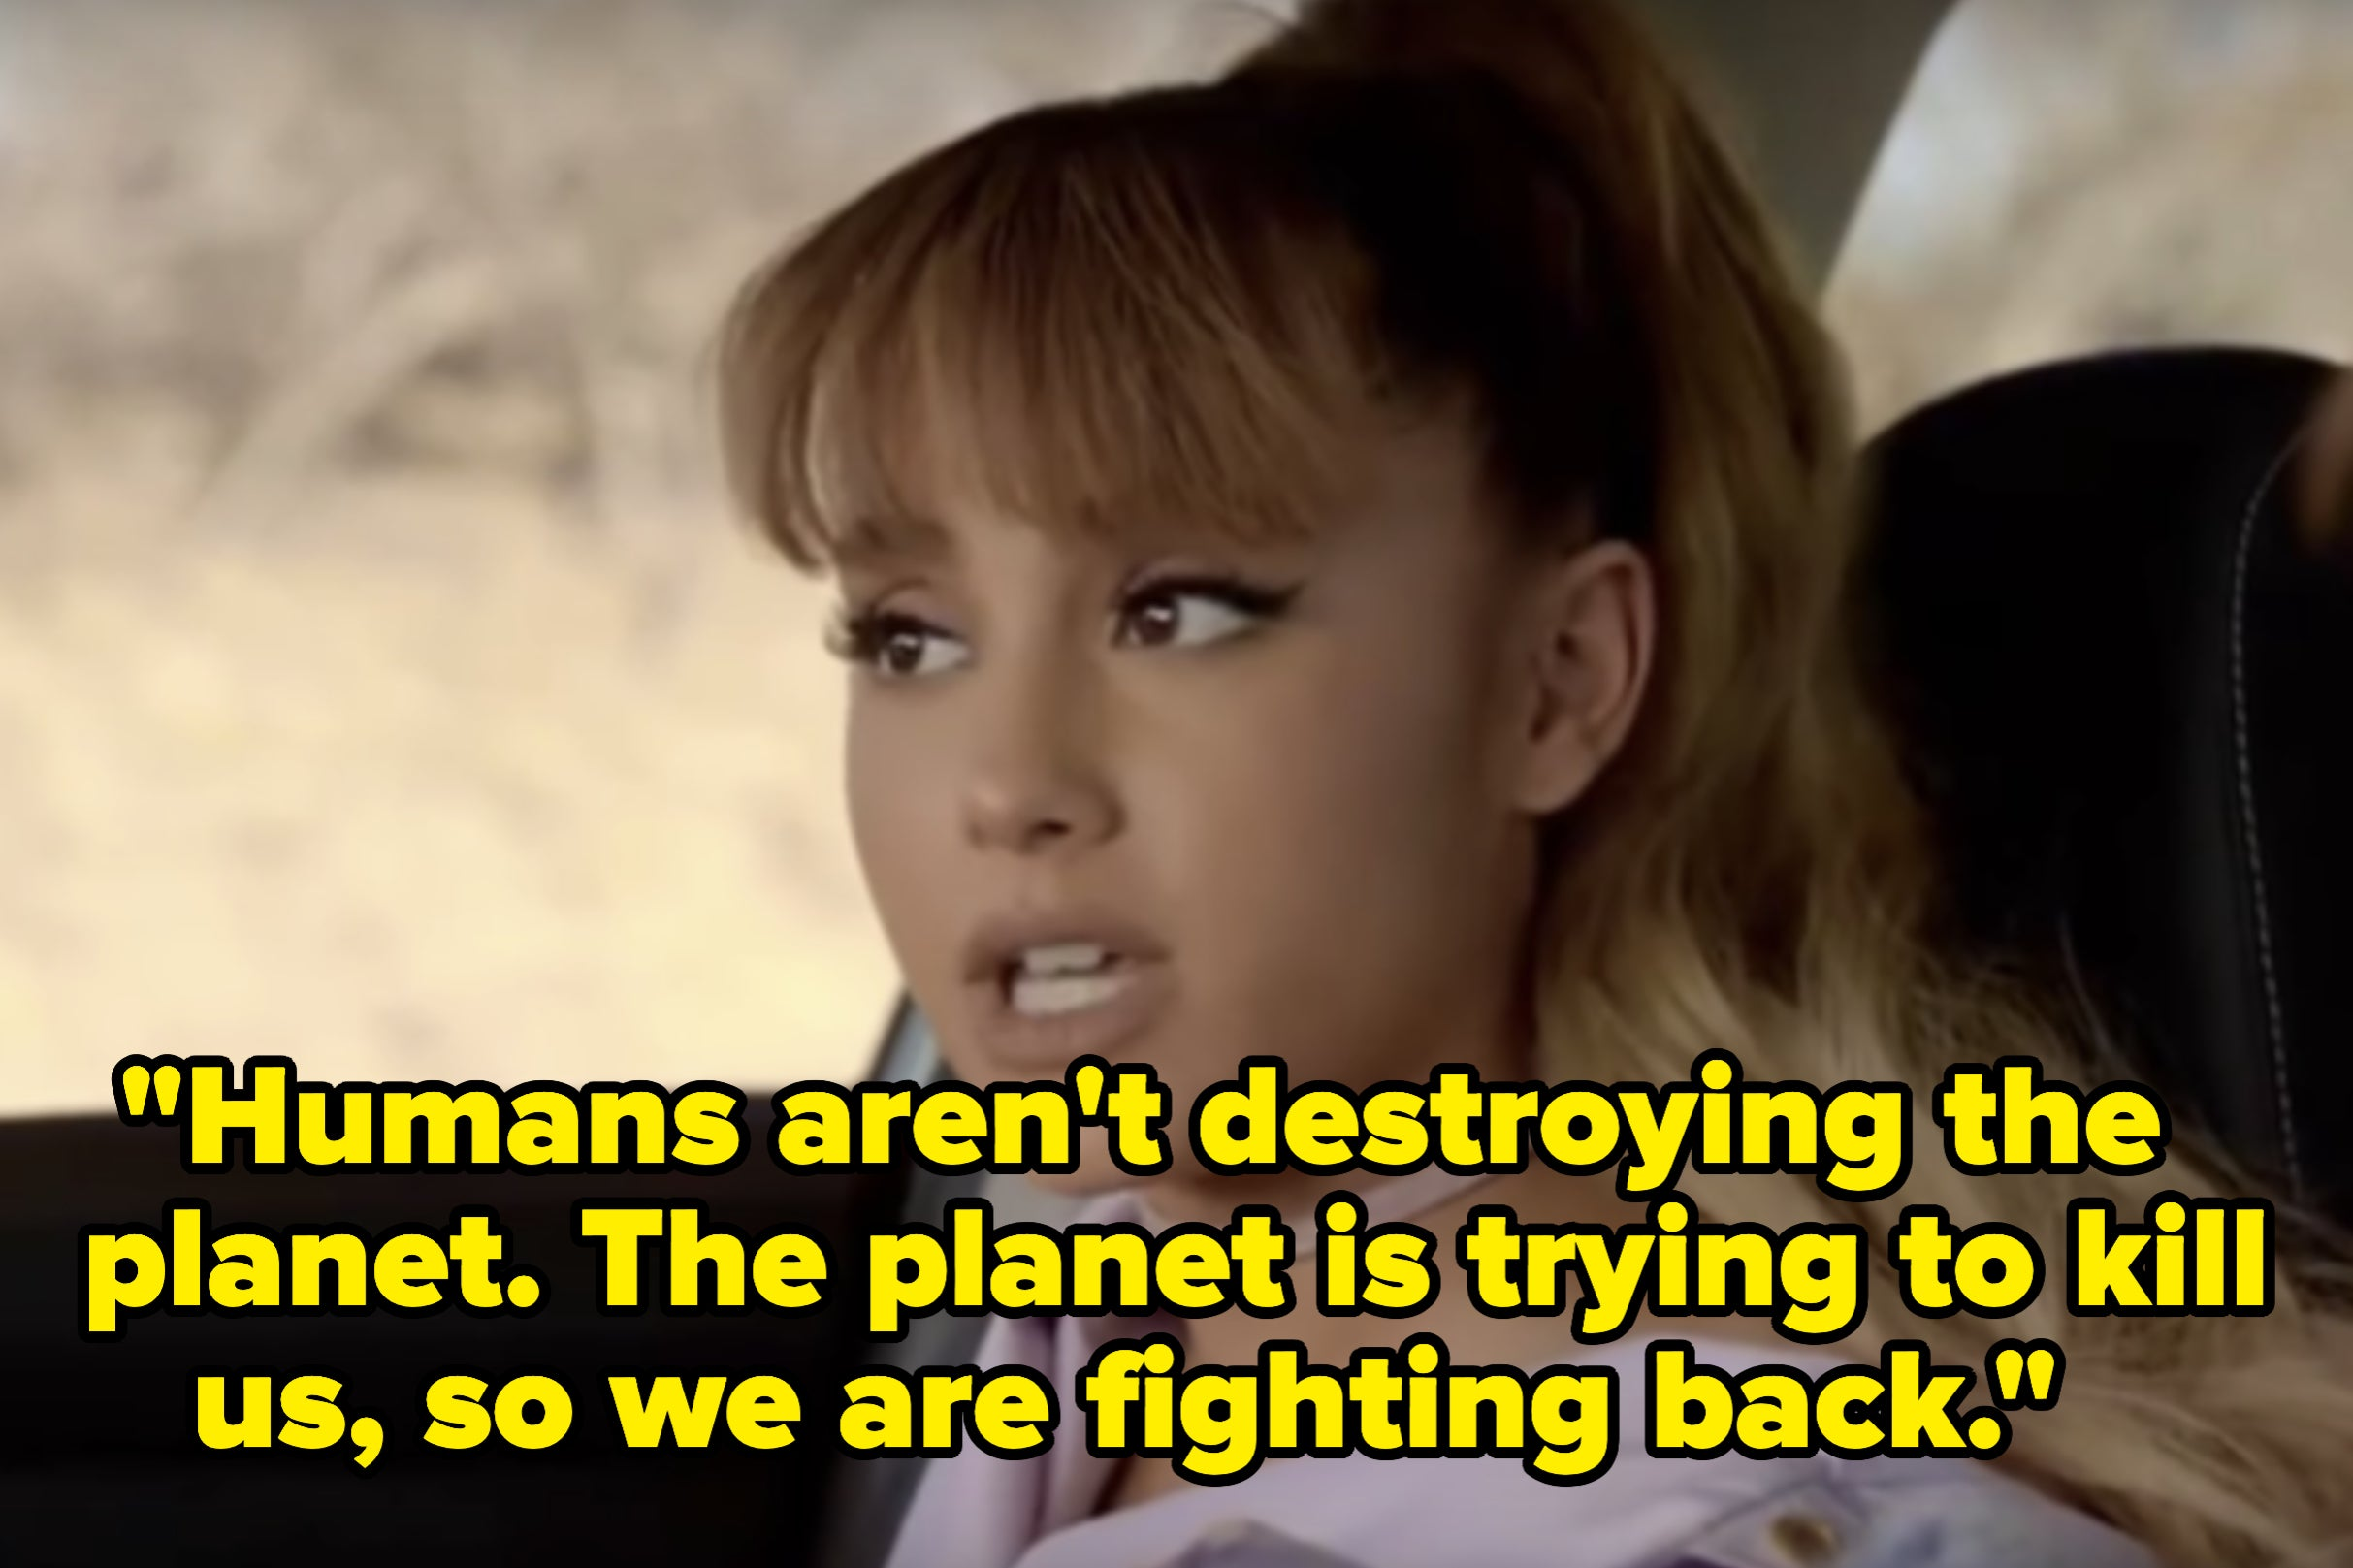 31 Incredibly Ridiculous Things People Heard That Have Made Me Lose My Last Bit Of Faith In Humankind